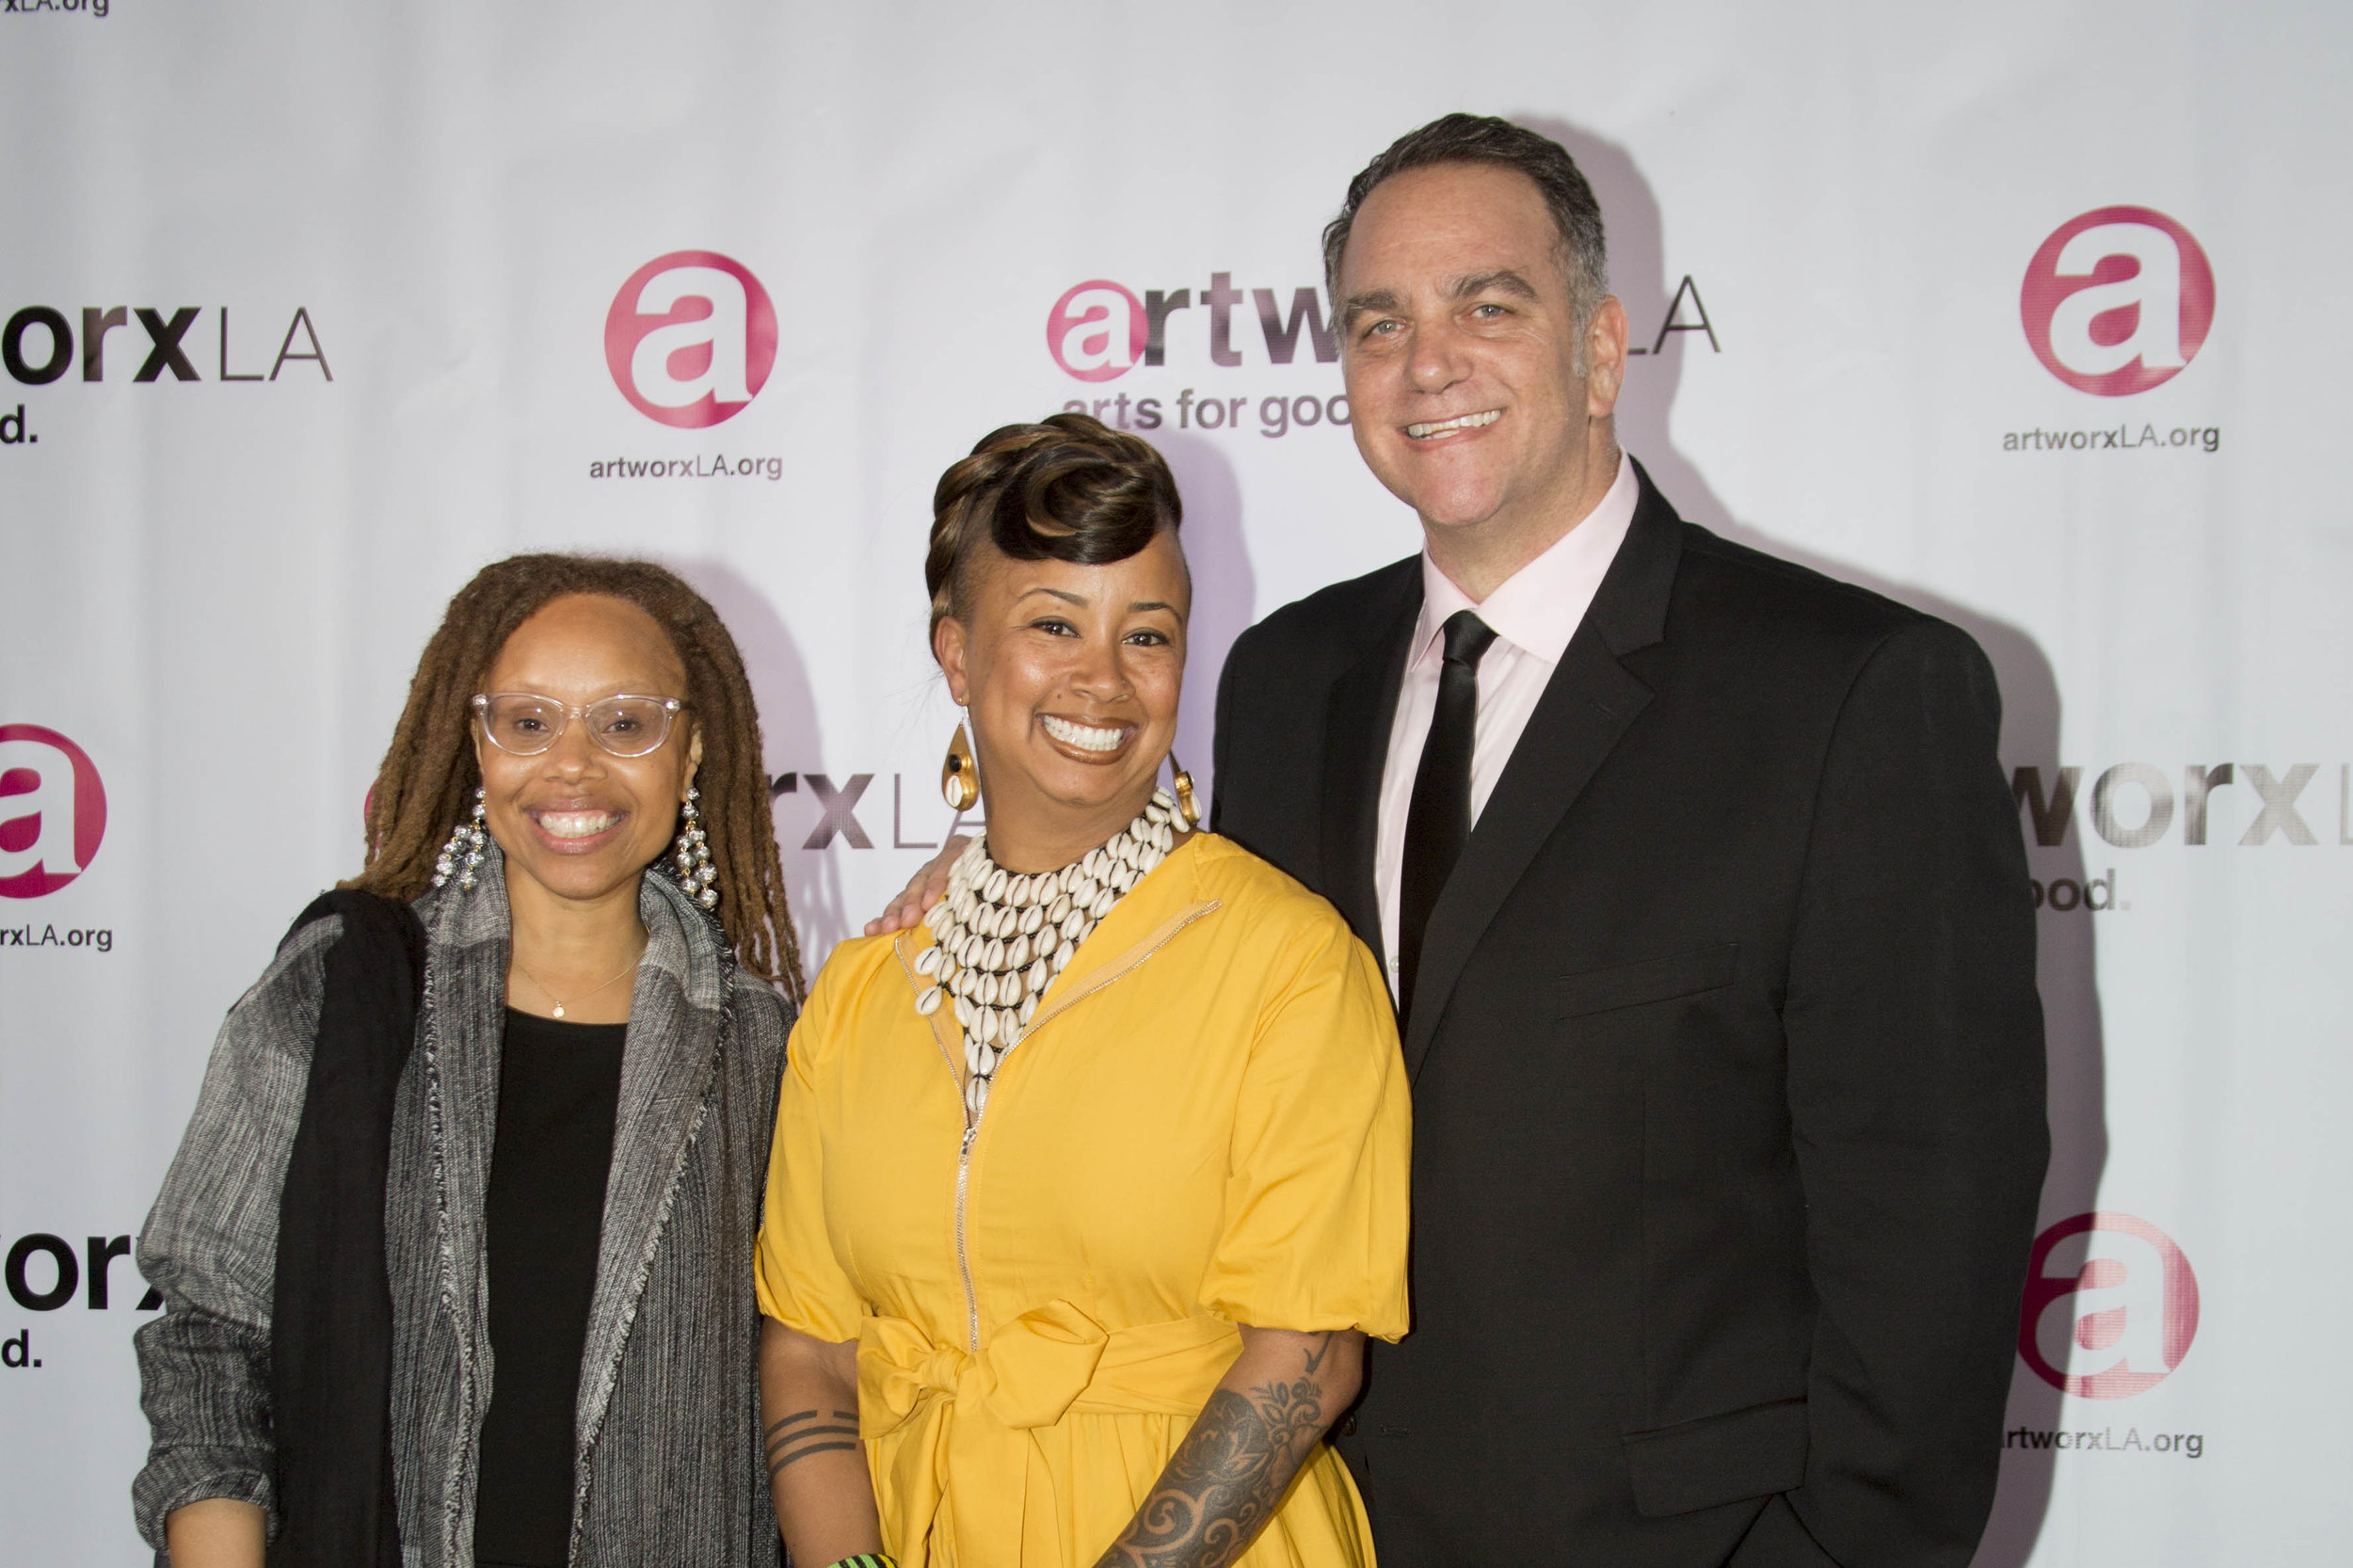 From left:  Kristin Sakoda, Executive Director of the Los Angeles County Arts Commission, Shelby Williams-Gonzalez,  artworx LA Executive Director, and Michael Sugar, Founder and CEO of Sugar23.